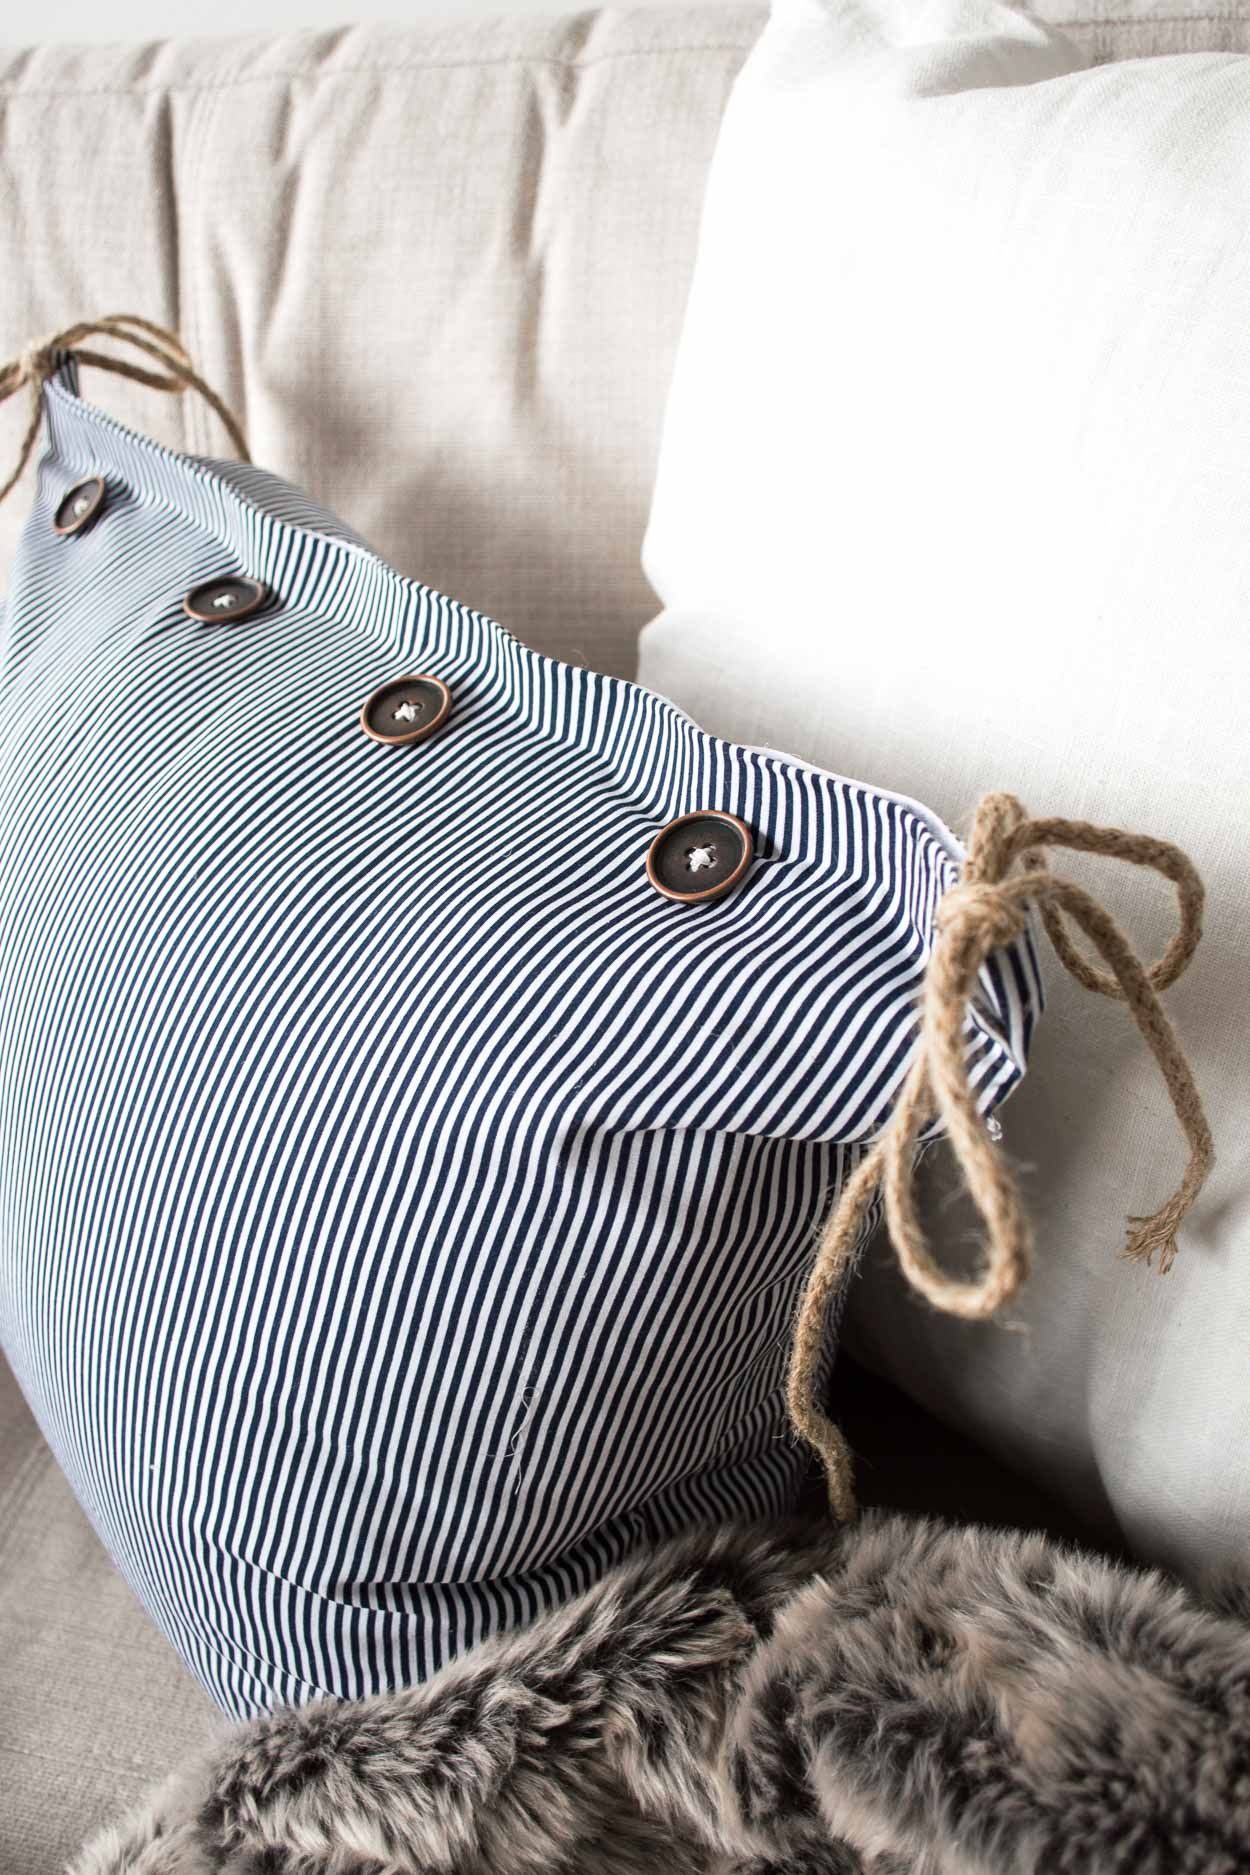 How To Make A Pretty No Sew Removable Cushion Cover Sewing